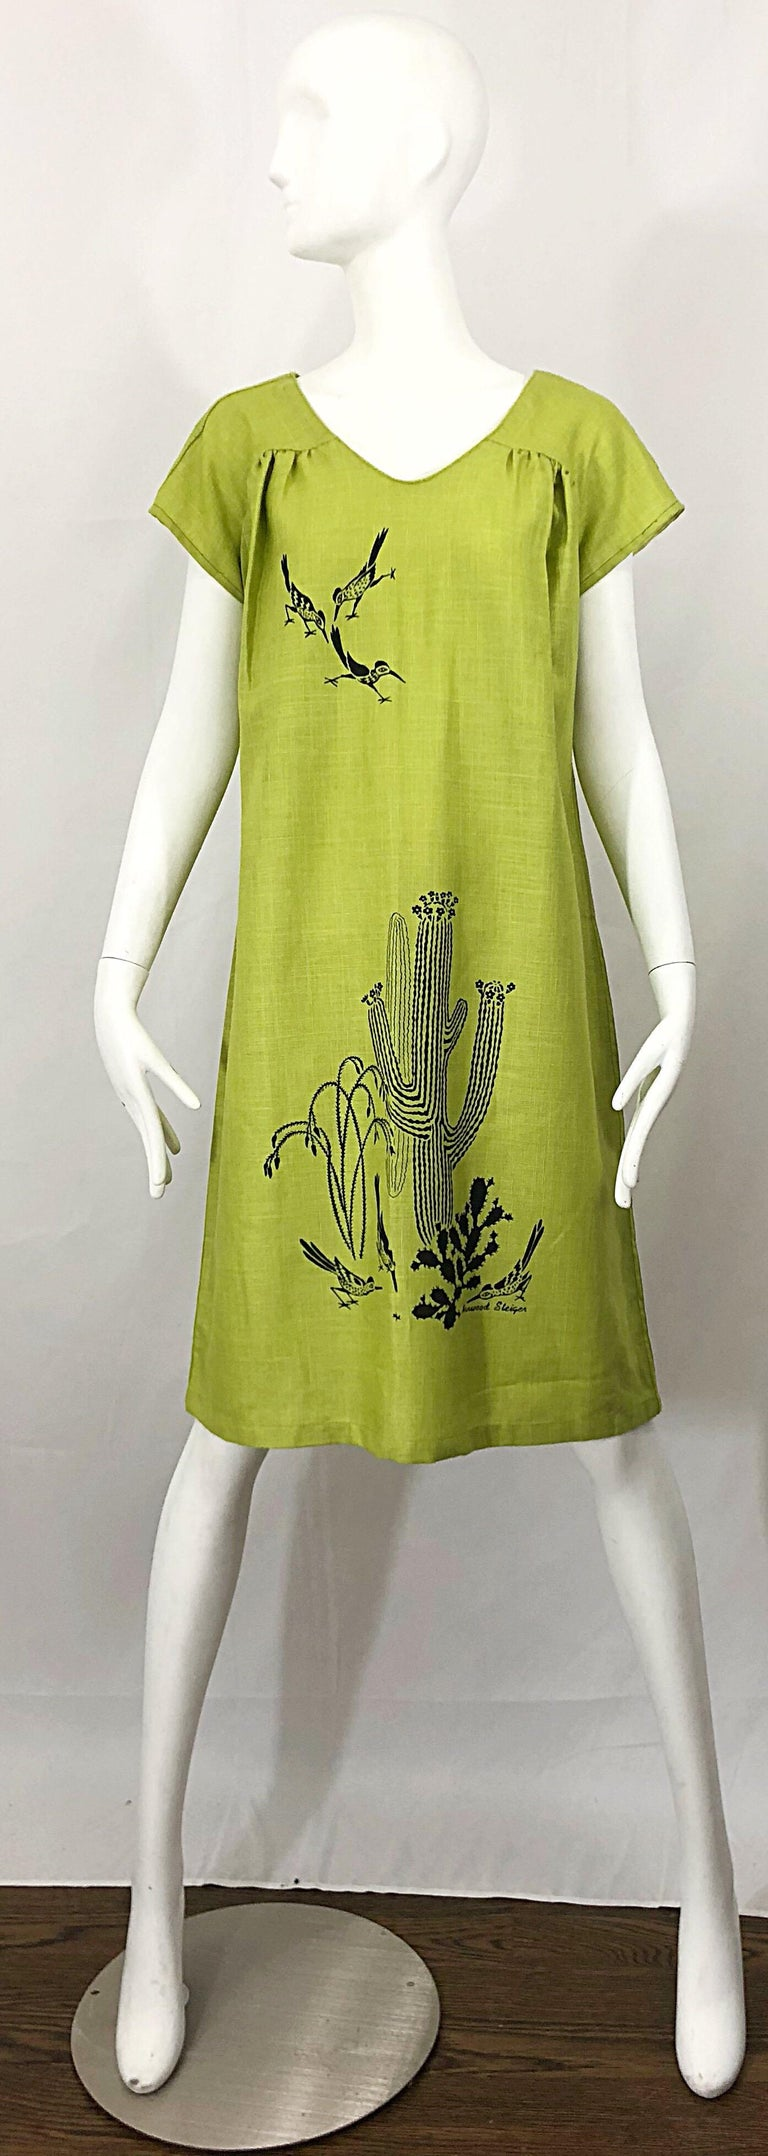 Rare chic vintage early 70s HARWOOD STEIGER artist signed screenprinted avocado green short sleeve linen tunic caftan style empire dress! Soft linen blend fabric is lightweight, and great layered or alone (would also be great over a swimsuit).